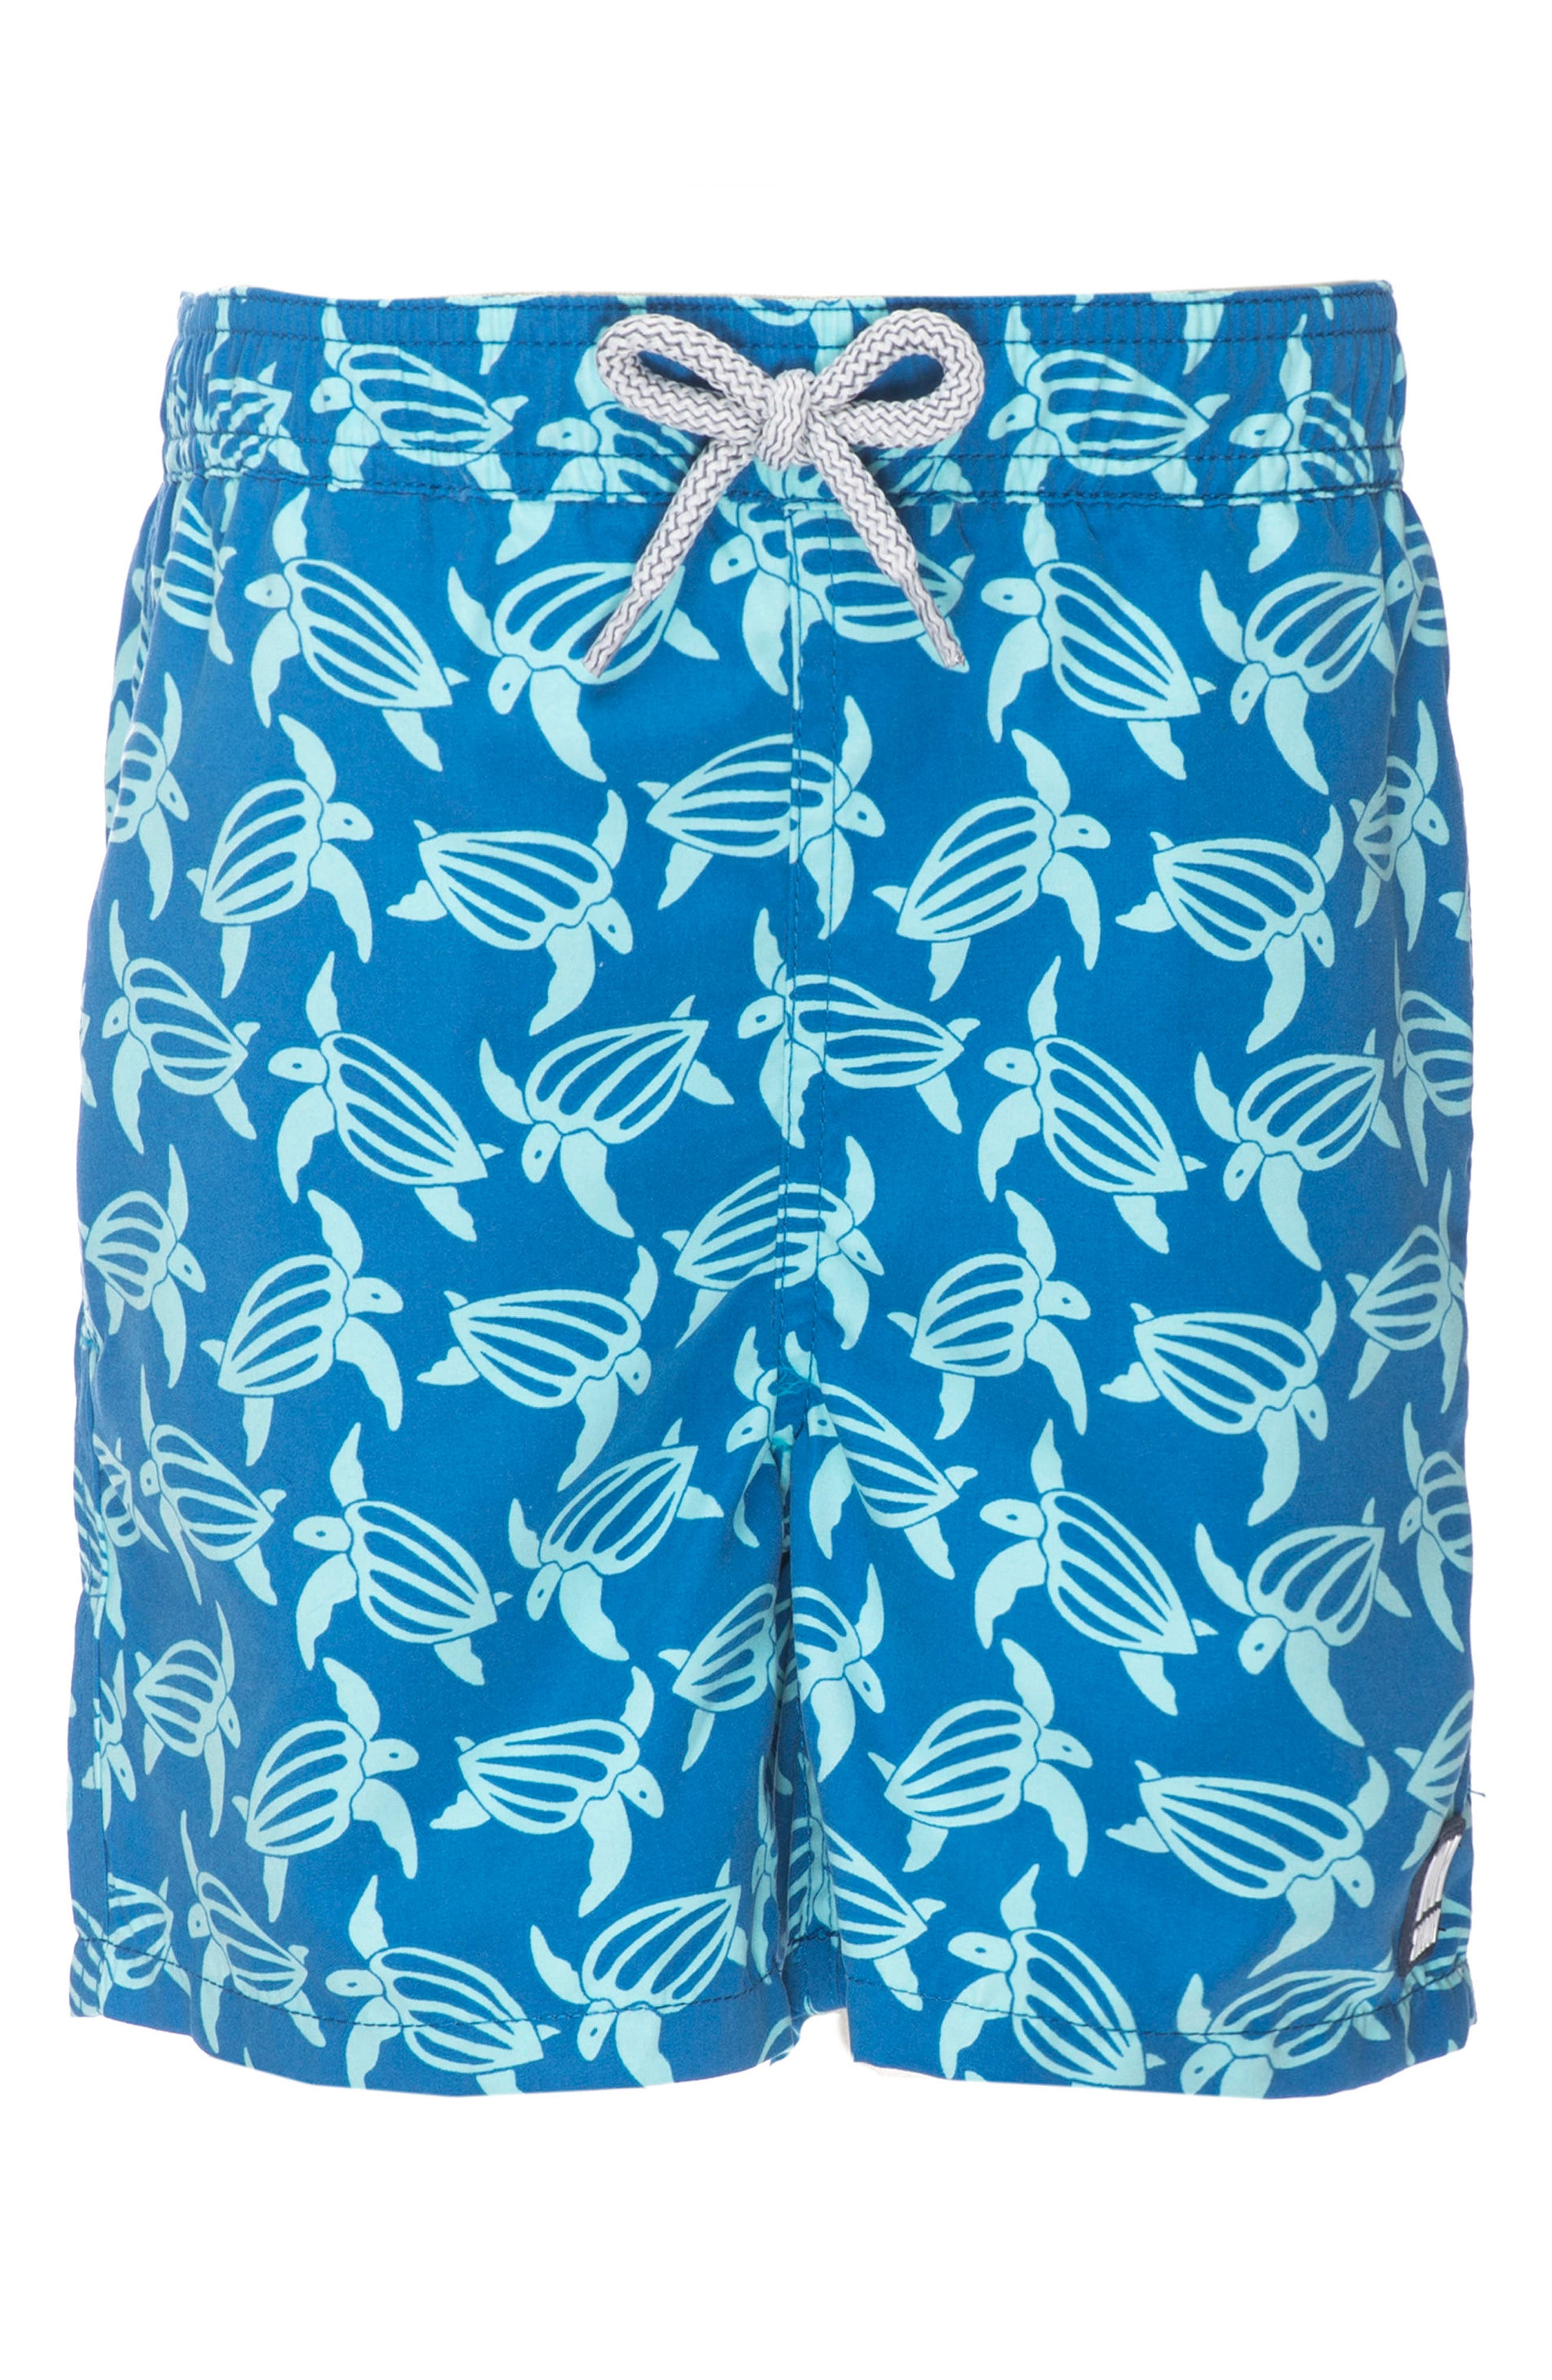 Turtle Swim Trunks,                             Alternate thumbnail 2, color,                             Mid Blue/ Sky